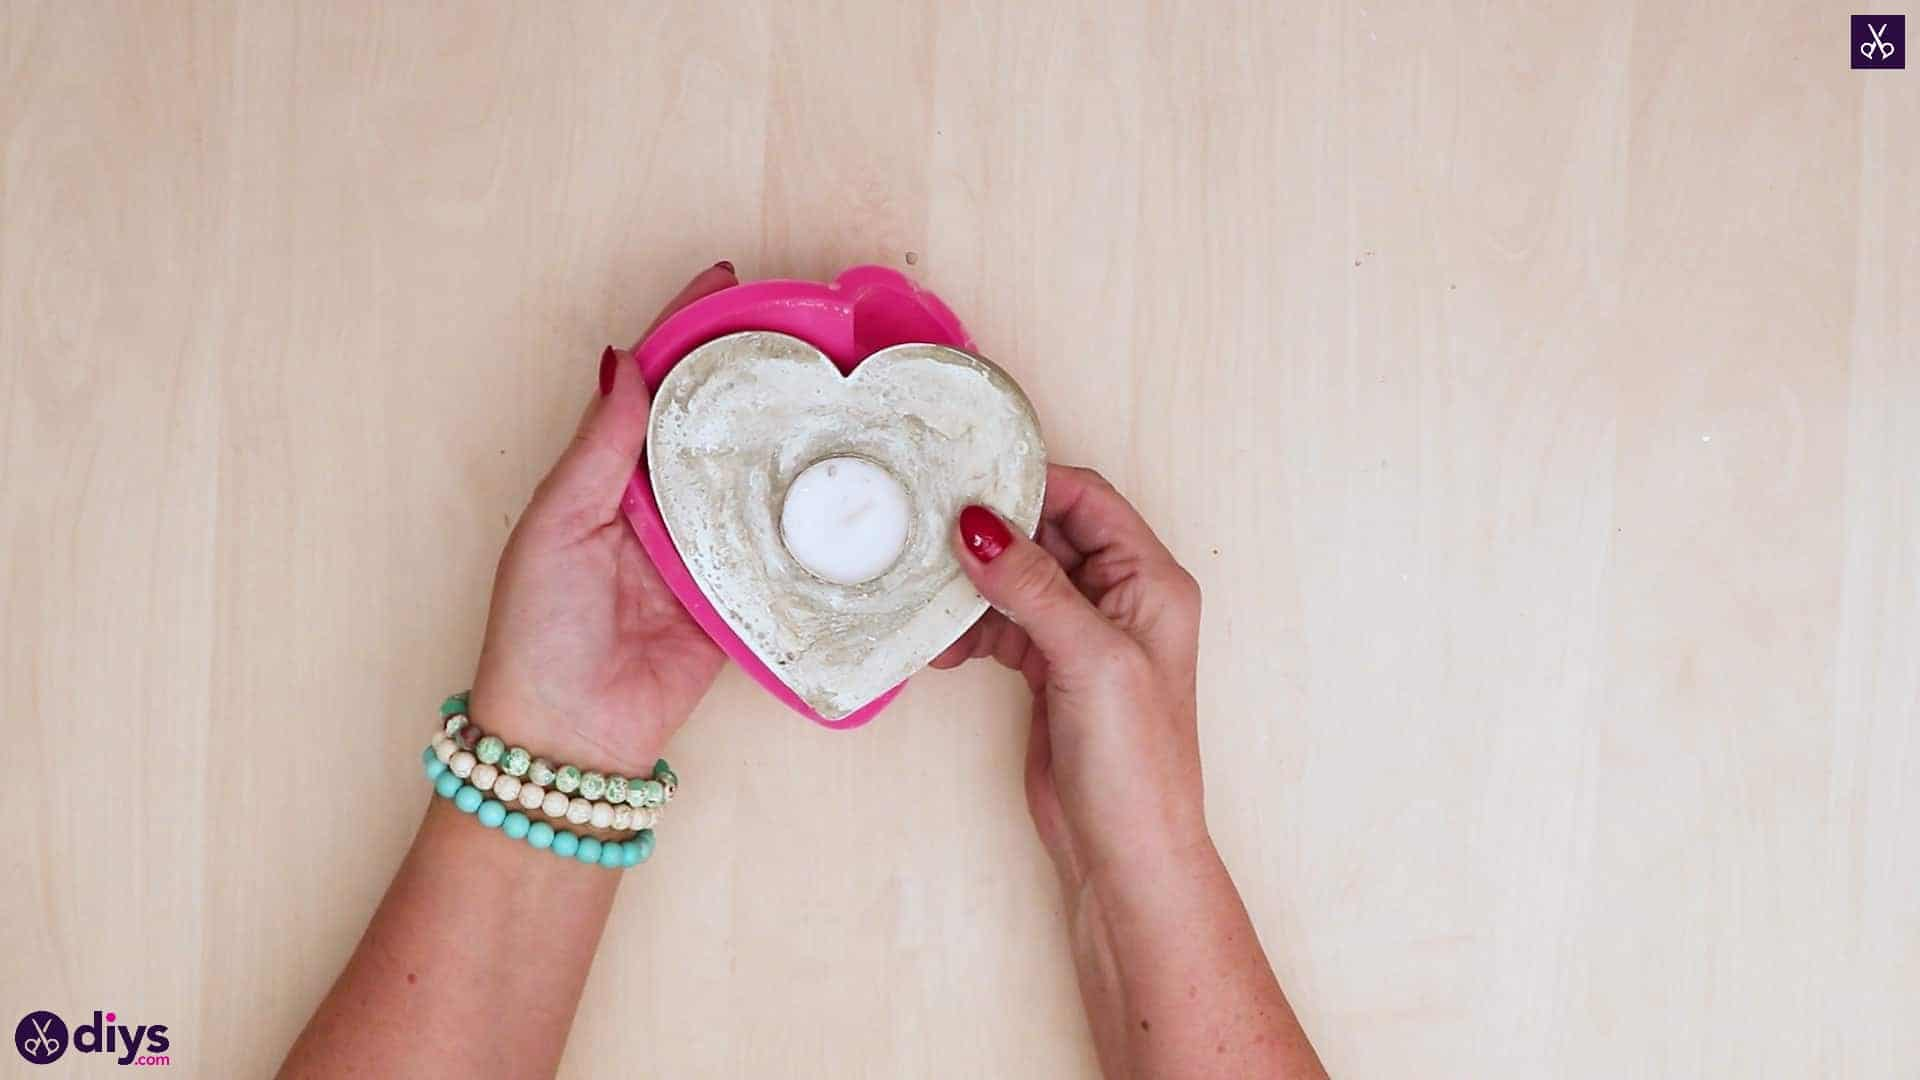 Diy concrete heart candle holder removing mold